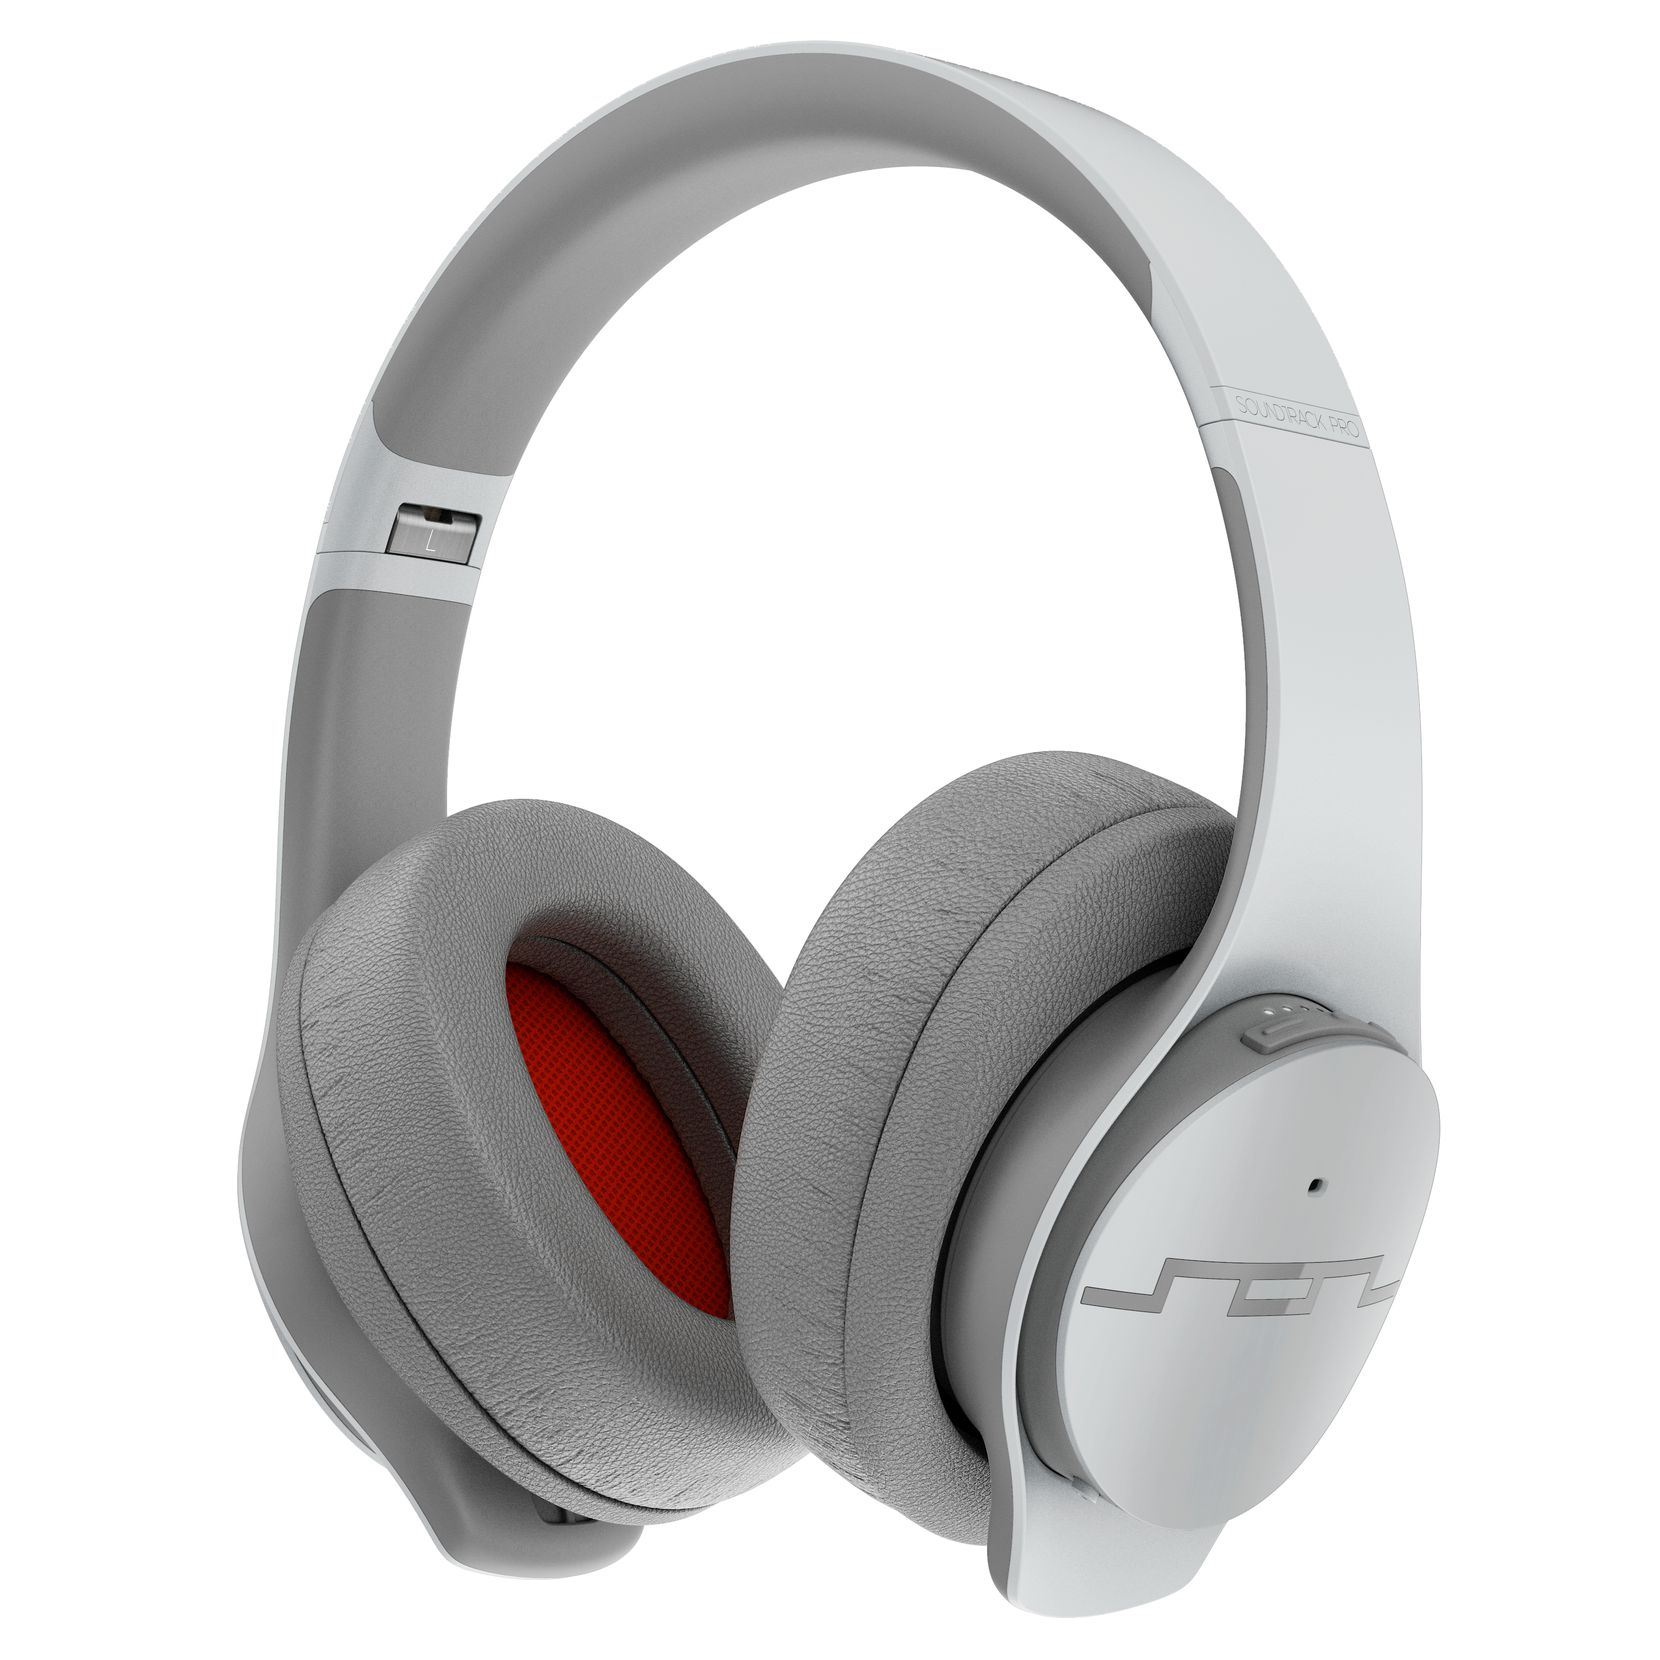 Sol Republic Soundtrack Pro headphones with active noise cancelling.